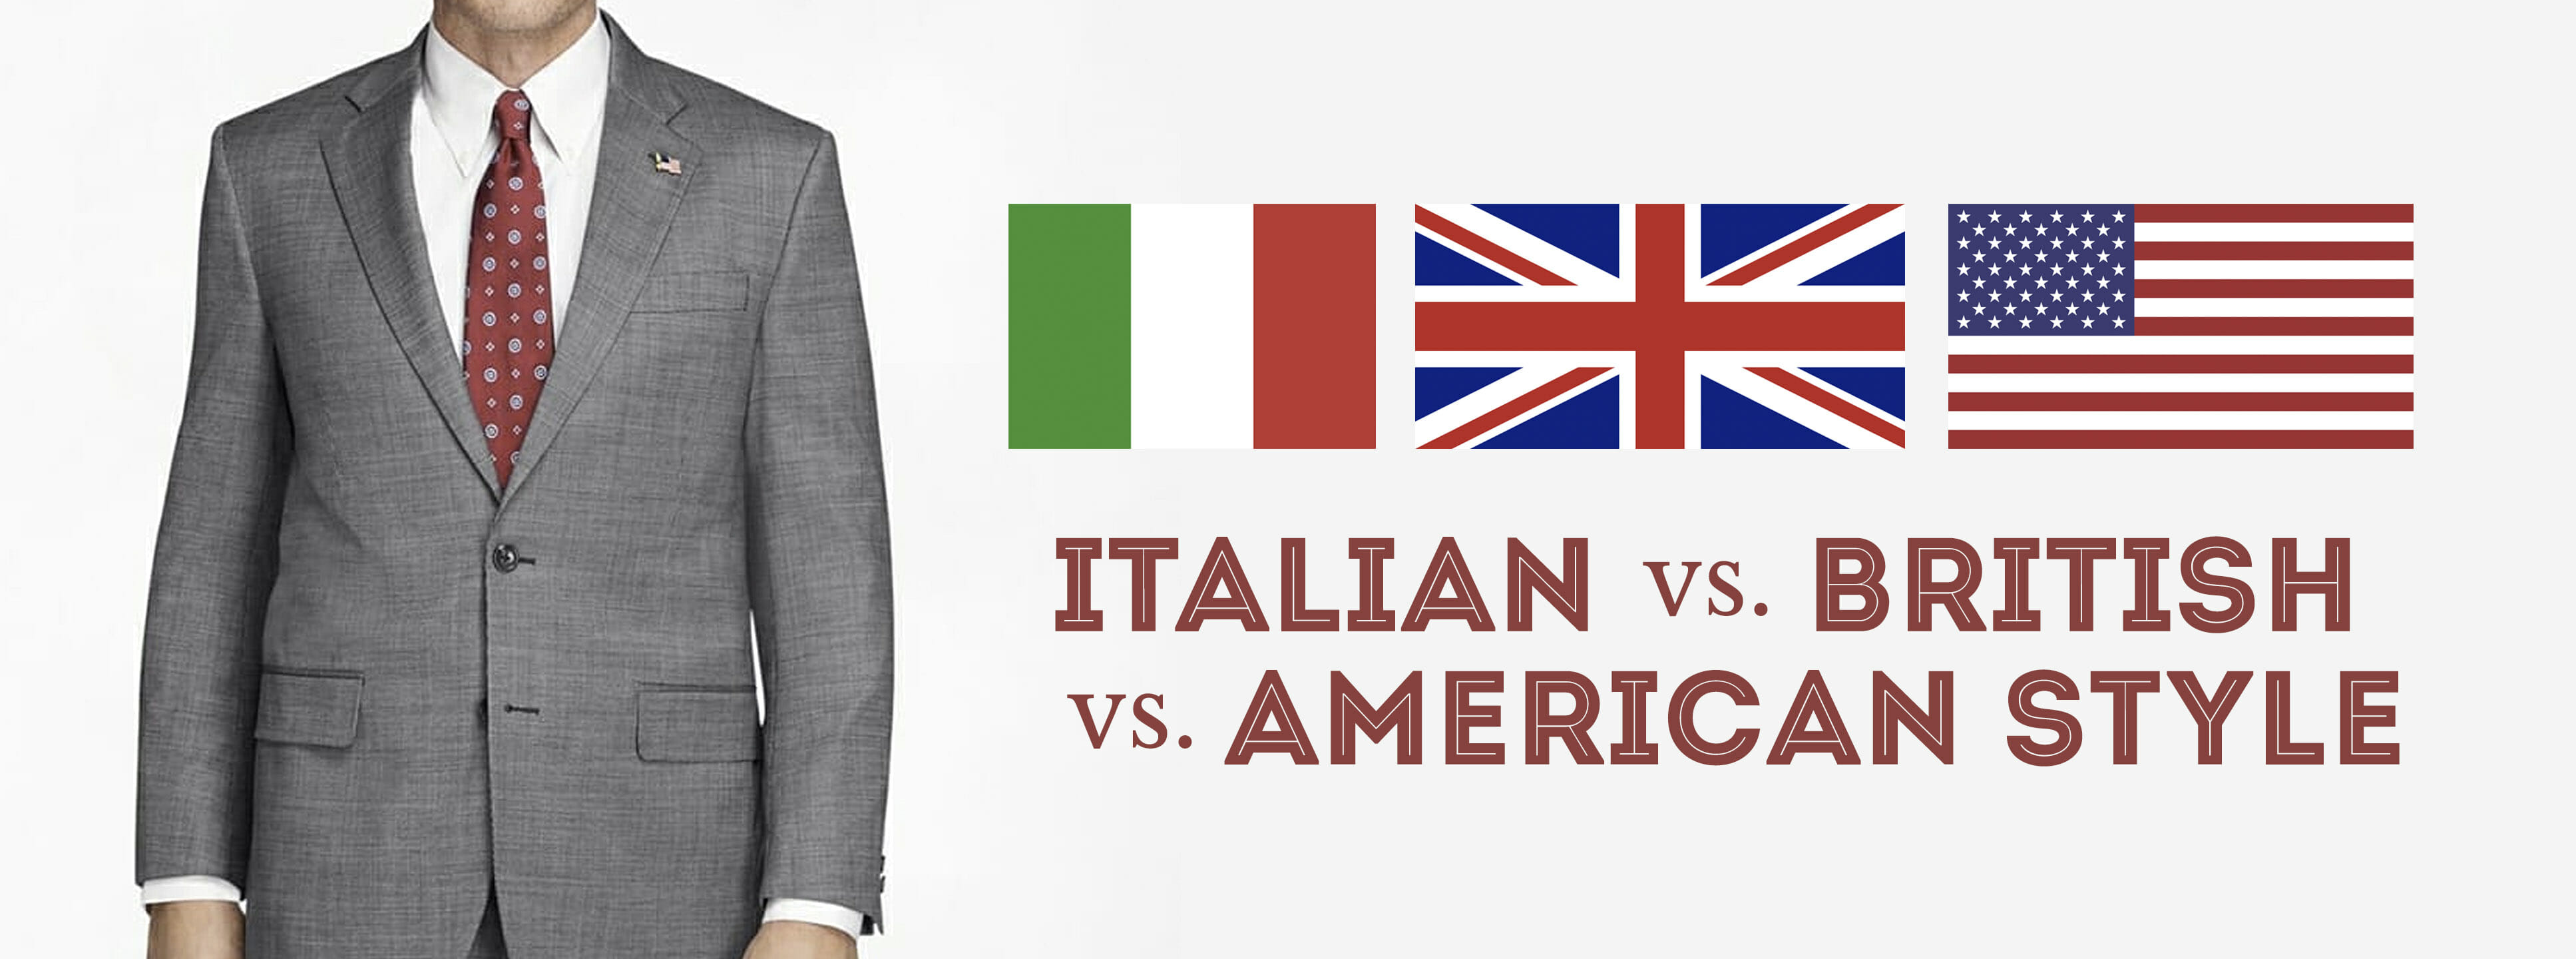 f8bb7b70565e What are the Differences among British, American, and Italian Suit Styles?